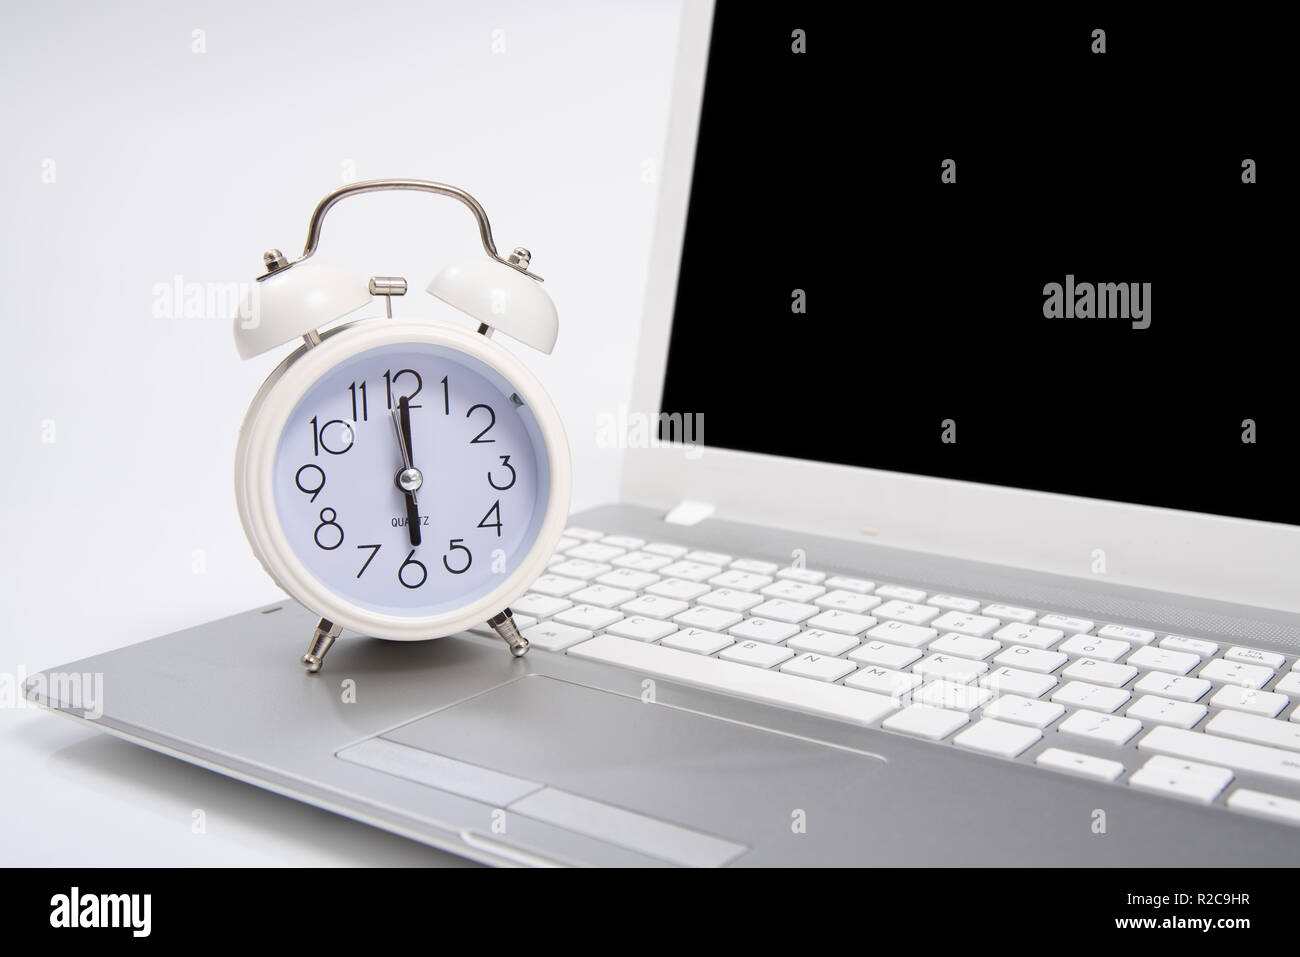 Alarm clock and portable computer put on the desk, with white background. - Stock Image